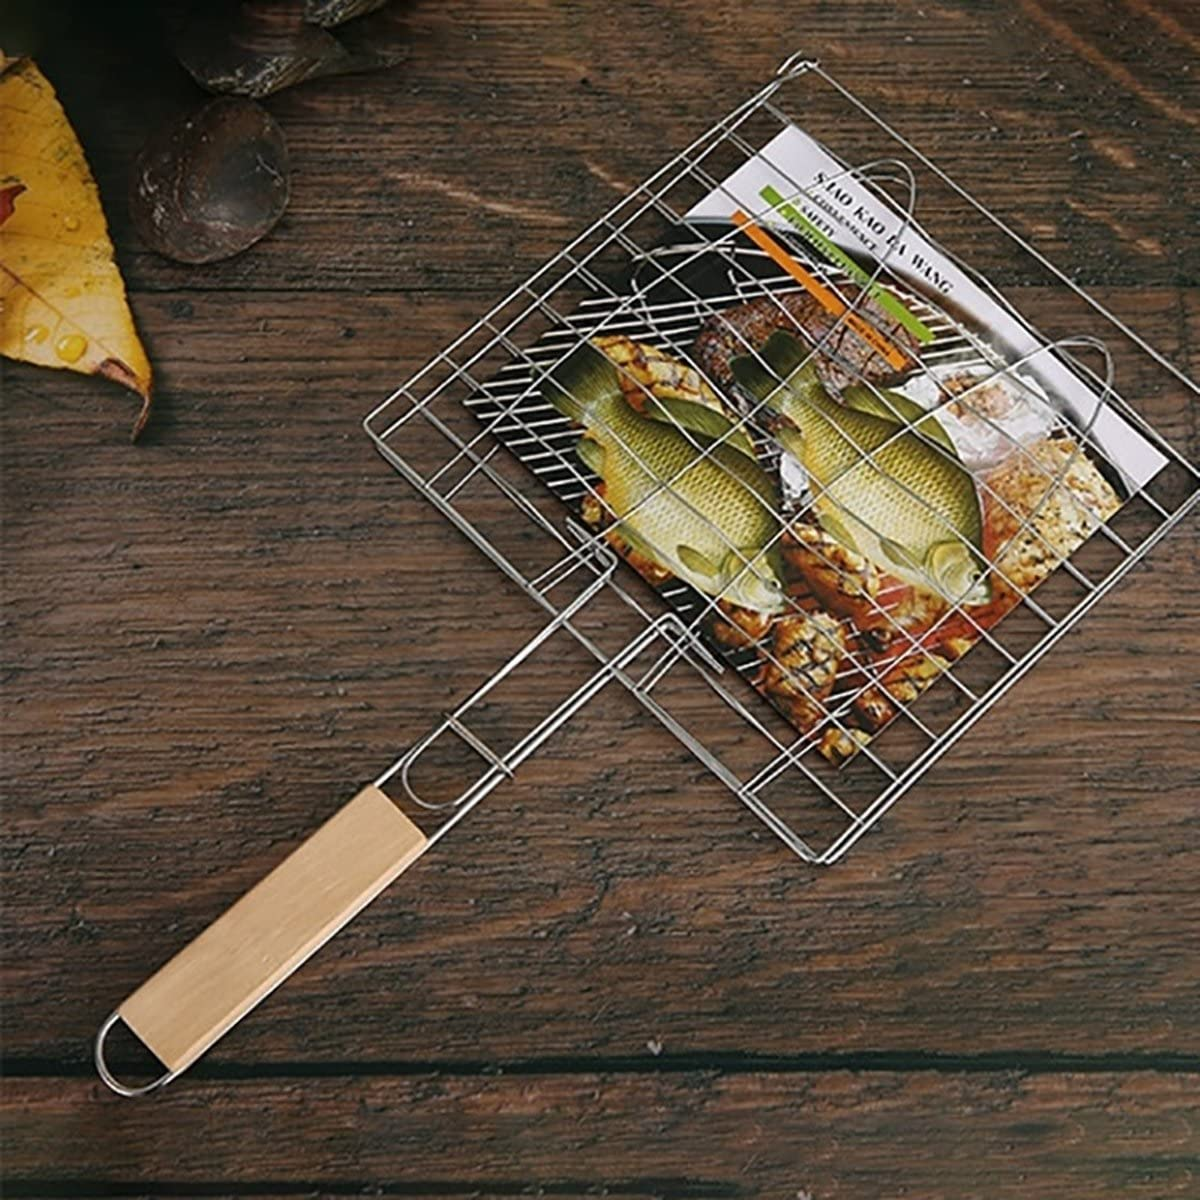 Mochiglory Outdoor Portable Multi-Purpose Harmless Healthy Barbecue Grill Net Clip Tools Insert Handle Party Supplies